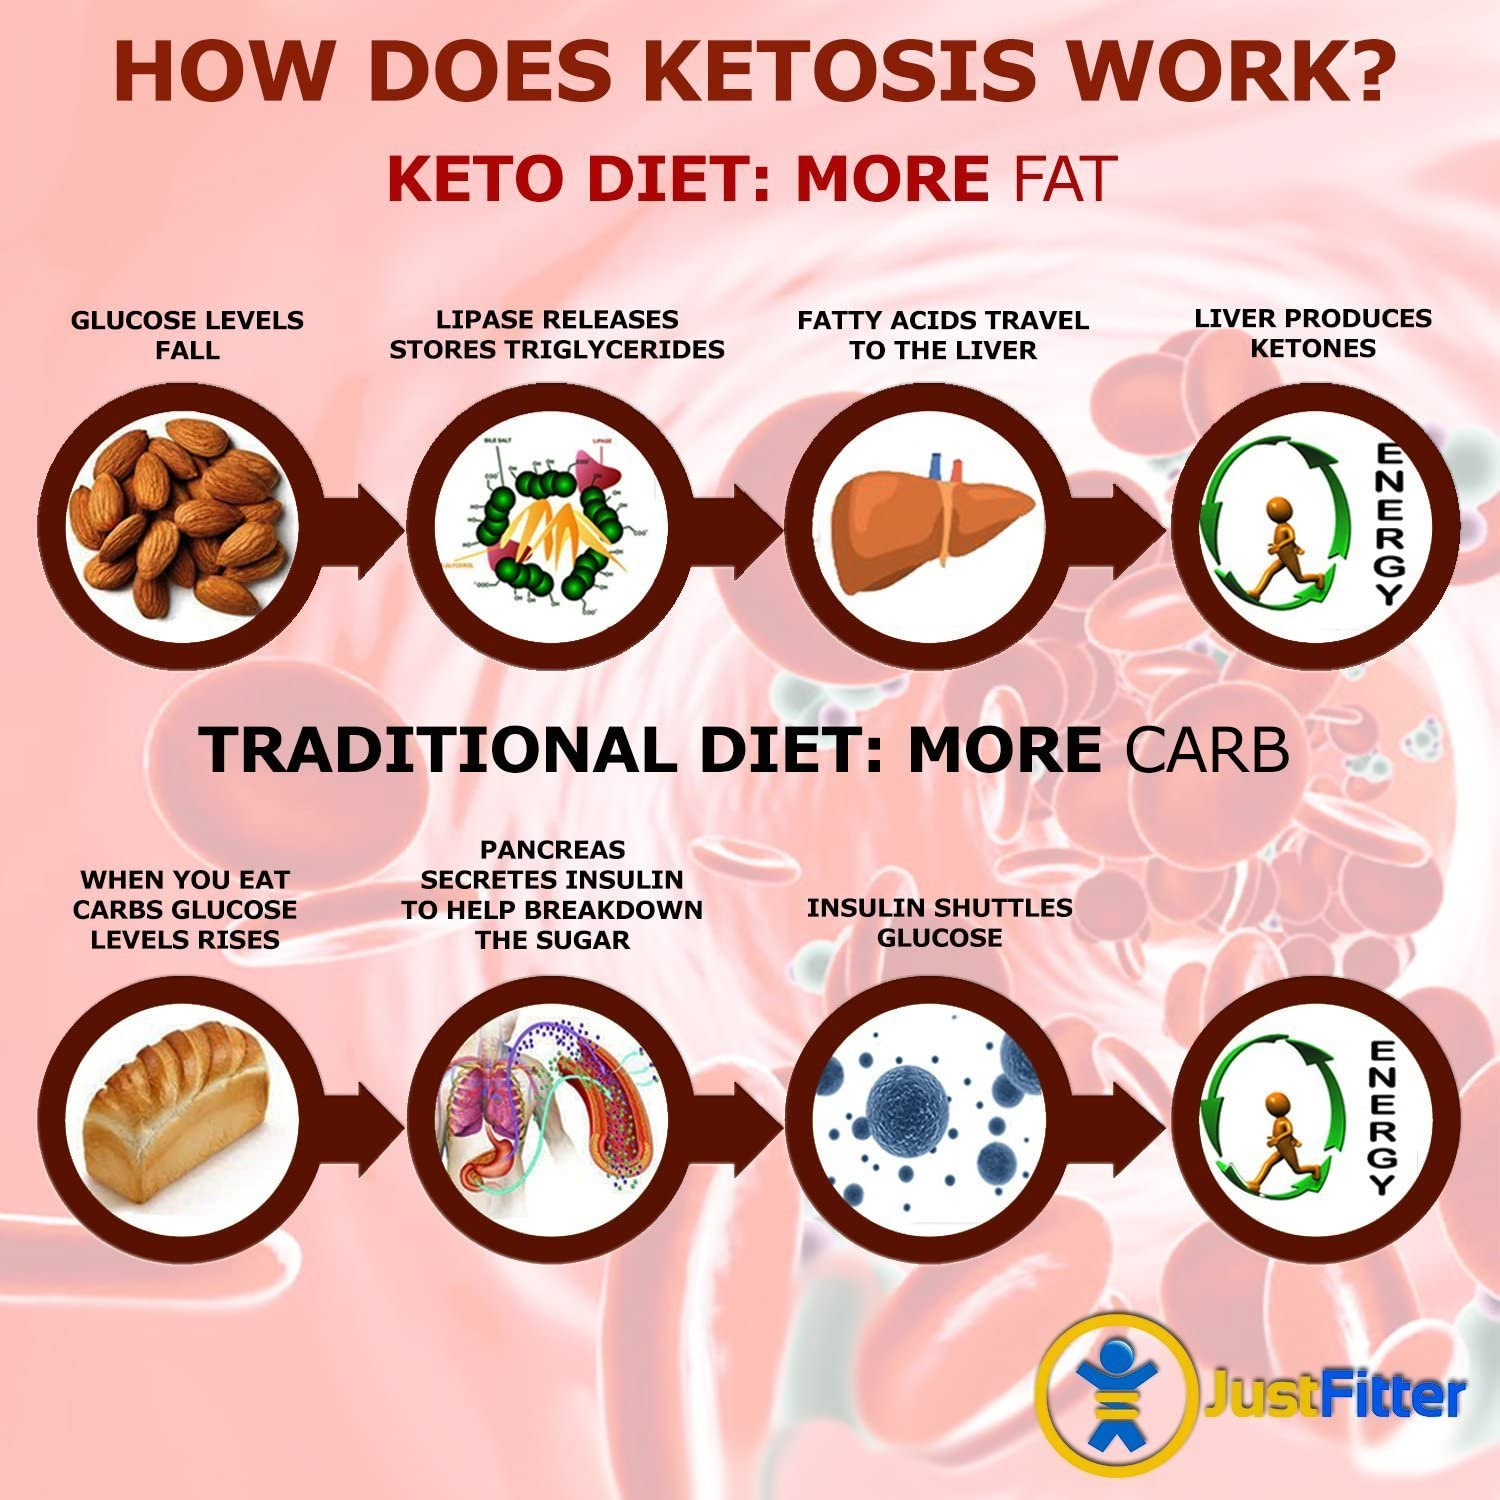 Ketone Keto Urine Test Strips. Look & Feel Fabulous on a Low Carb Ketogenic or HCG Diet. Get Your Body Back! Accurately Measure Your Fat Burning Ketosis Levels.: Health & Personal Care